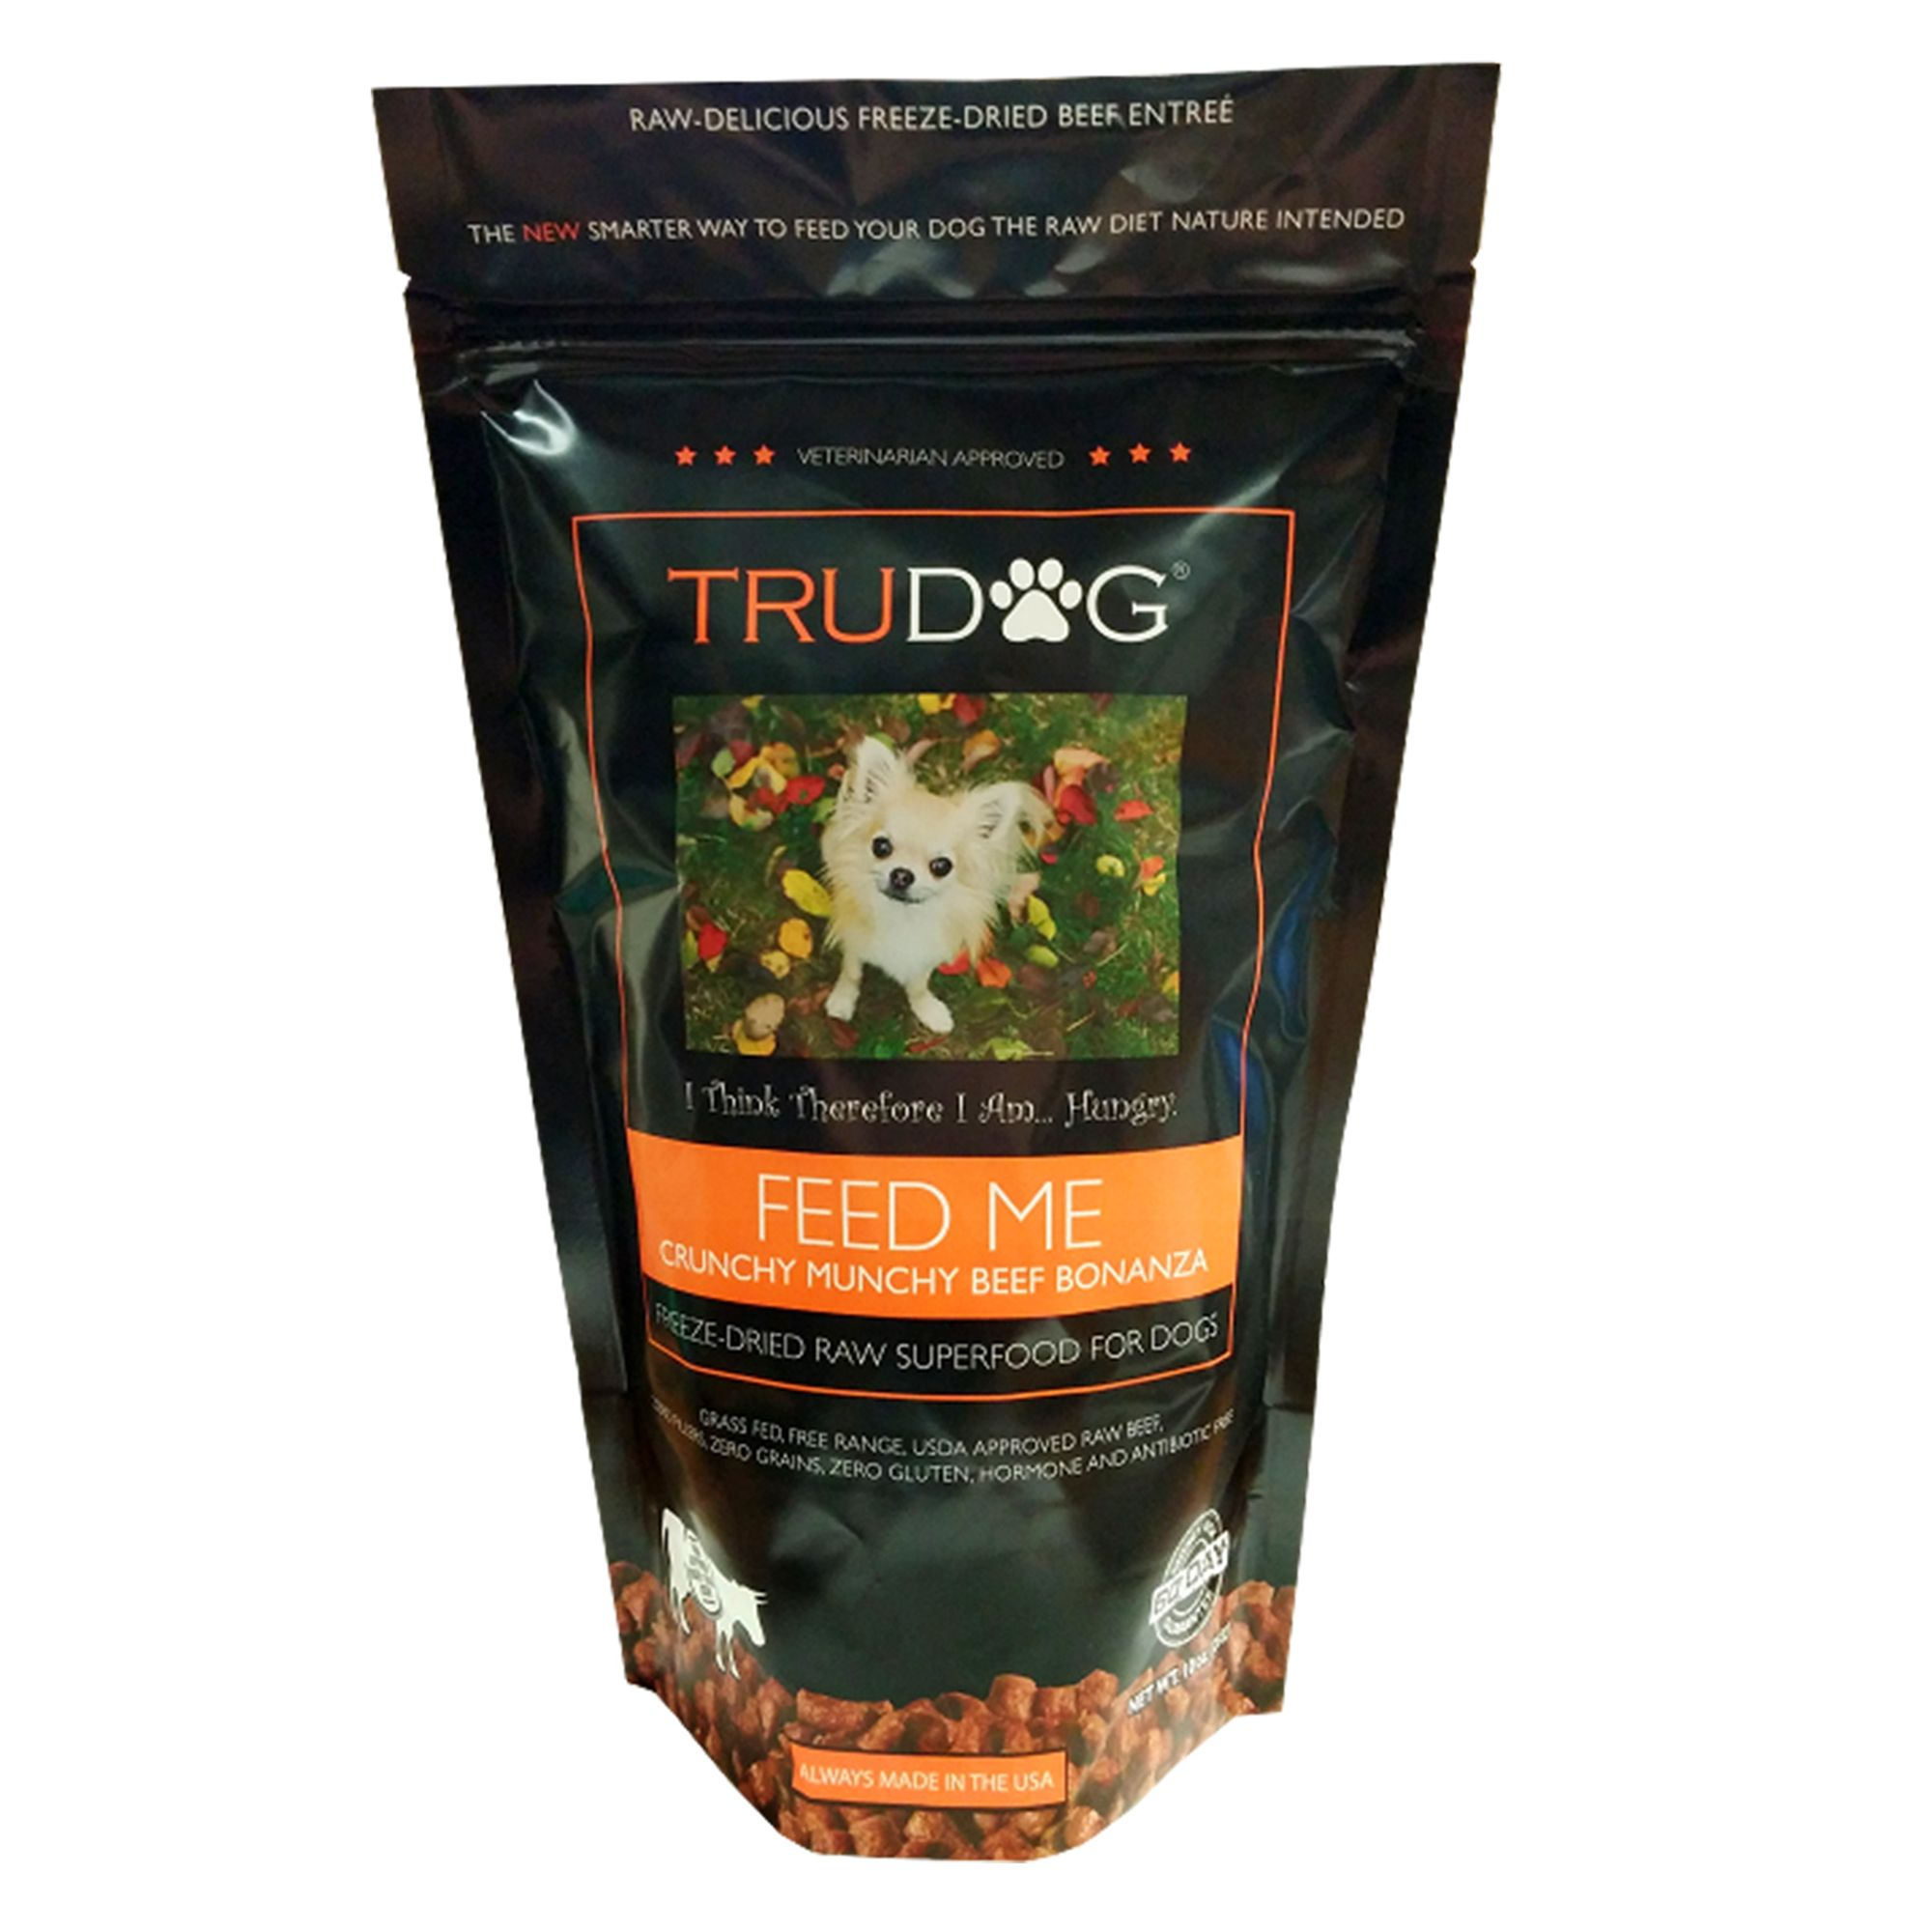 Trudog Feed Me Superfood Dog Food Freeze Dried Raw Natural Crunchy Munchy Beef Bonanza Size 10 Oz